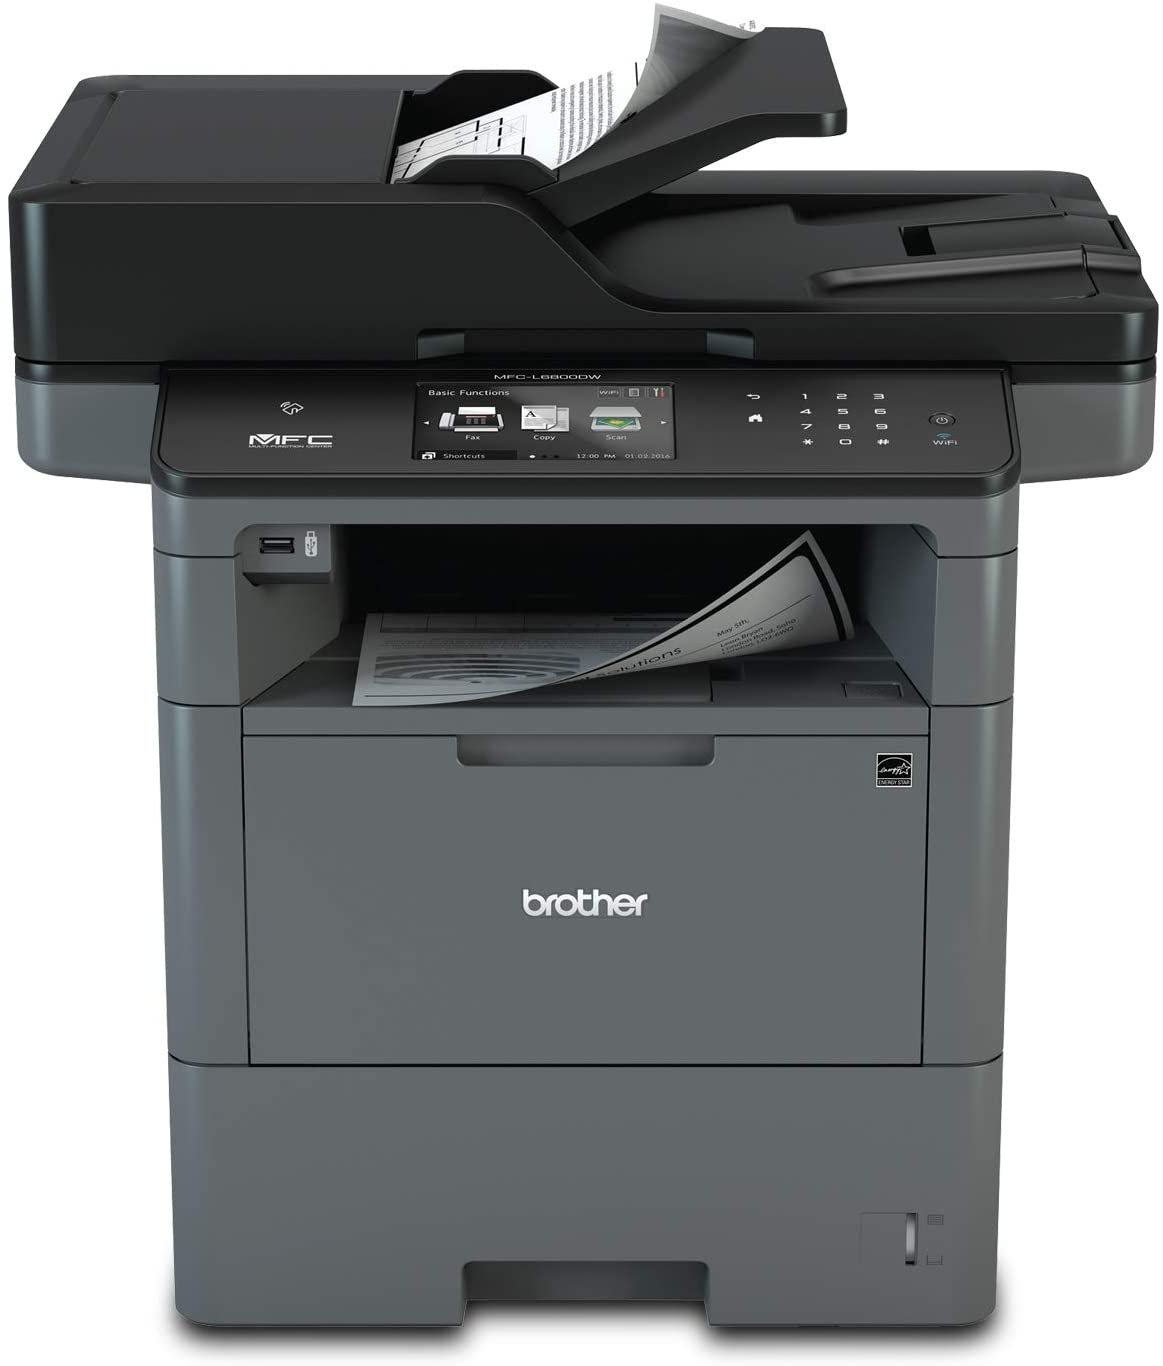 Brother Monochrome Laser, Multifunction, All-in-One Printer, MFC-L6800DW, Wireless Networking, Mobile Printing & Scanning, Duplex Print, Scan & Copy, Amazon Dash Replenishment Enabled, Black